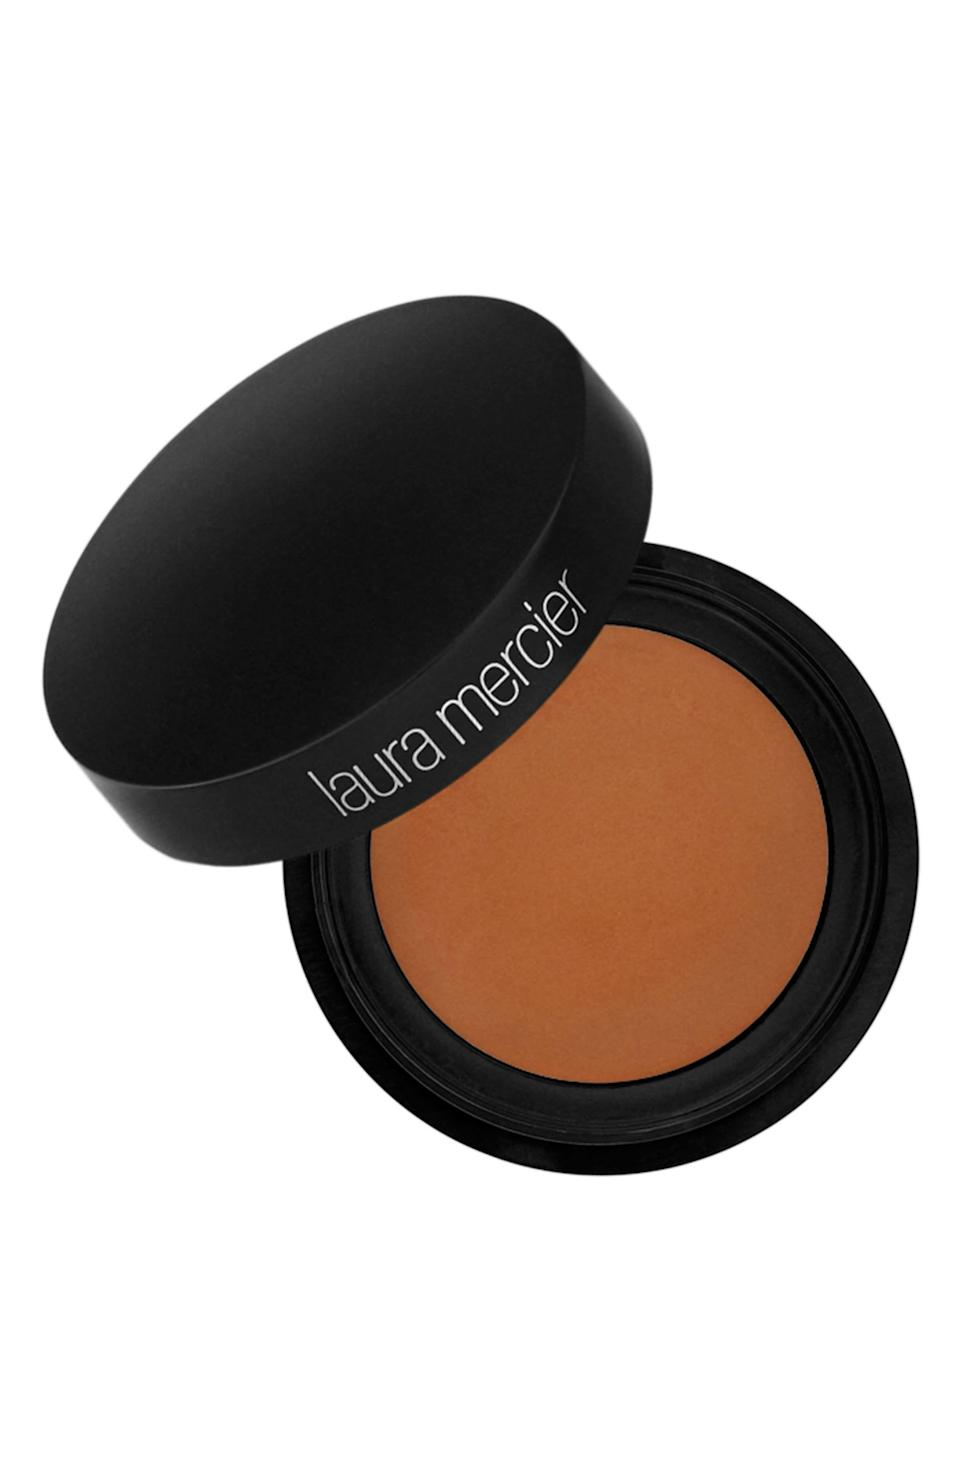 """<p><strong>LAURA MERCIER</strong></p><p>nordstrom.com</p><p><strong>$29.00</strong></p><p><a href=""""https://go.redirectingat.com?id=74968X1596630&url=https%3A%2F%2Fwww.nordstrom.com%2Fs%2Flaura-mercier-secret-concealer%2F2789489&sref=https%3A%2F%2Fwww.thepioneerwoman.com%2Fbeauty%2Fskin-makeup-nails%2Fg36563969%2Fbest-concealers-for-mature-skin%2F"""" rel=""""nofollow noopener"""" target=""""_blank"""" data-ylk=""""slk:Shop Now"""" class=""""link rapid-noclick-resp"""">Shop Now</a></p><p>This crease-resistant concealer is sold in 11 shades ranging from light to dark. While it's designed to stay put on its own, it works even better when paired with the brand's <a href=""""https://go.redirectingat.com?id=74968X1596630&url=https%3A%2F%2Fwww.sephora.com%2Fproduct%2Fsmooth-finish-foundation-powder-P381714&sref=https%3A%2F%2Fwww.thepioneerwoman.com%2Fbeauty%2Fskin-makeup-nails%2Fg36563969%2Fbest-concealers-for-mature-skin%2F"""" rel=""""nofollow noopener"""" target=""""_blank"""" data-ylk=""""slk:cult-favorite finishing powder."""" class=""""link rapid-noclick-resp"""">cult-favorite finishing powder.</a></p>"""